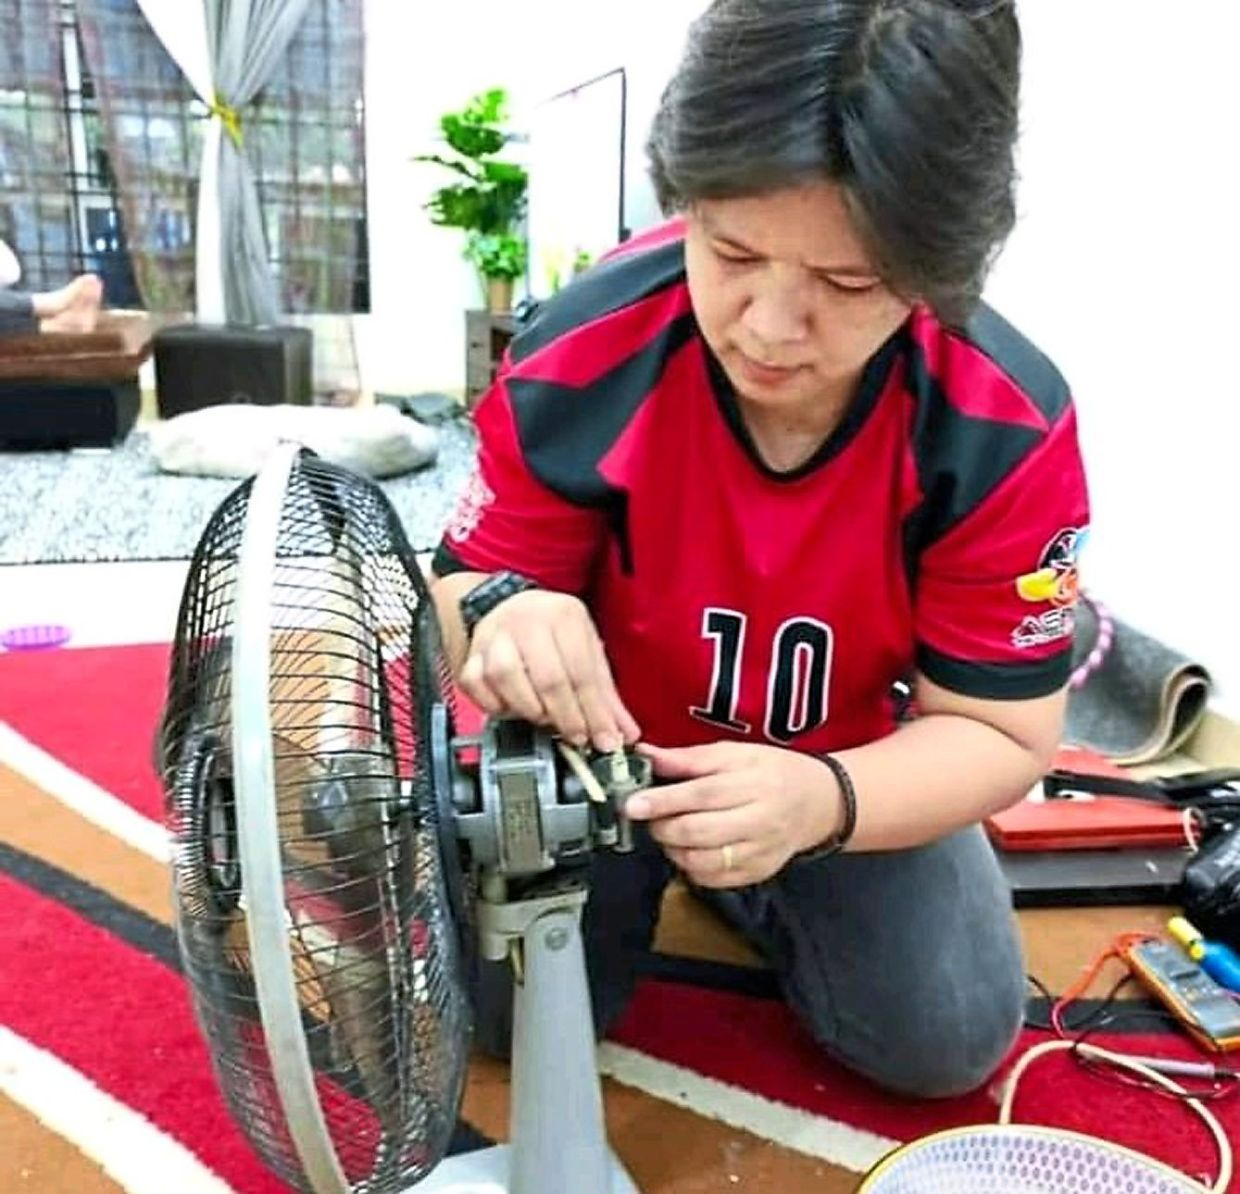 Rahimah enjoys fixing faulty electrical devices and bringing them back to life.